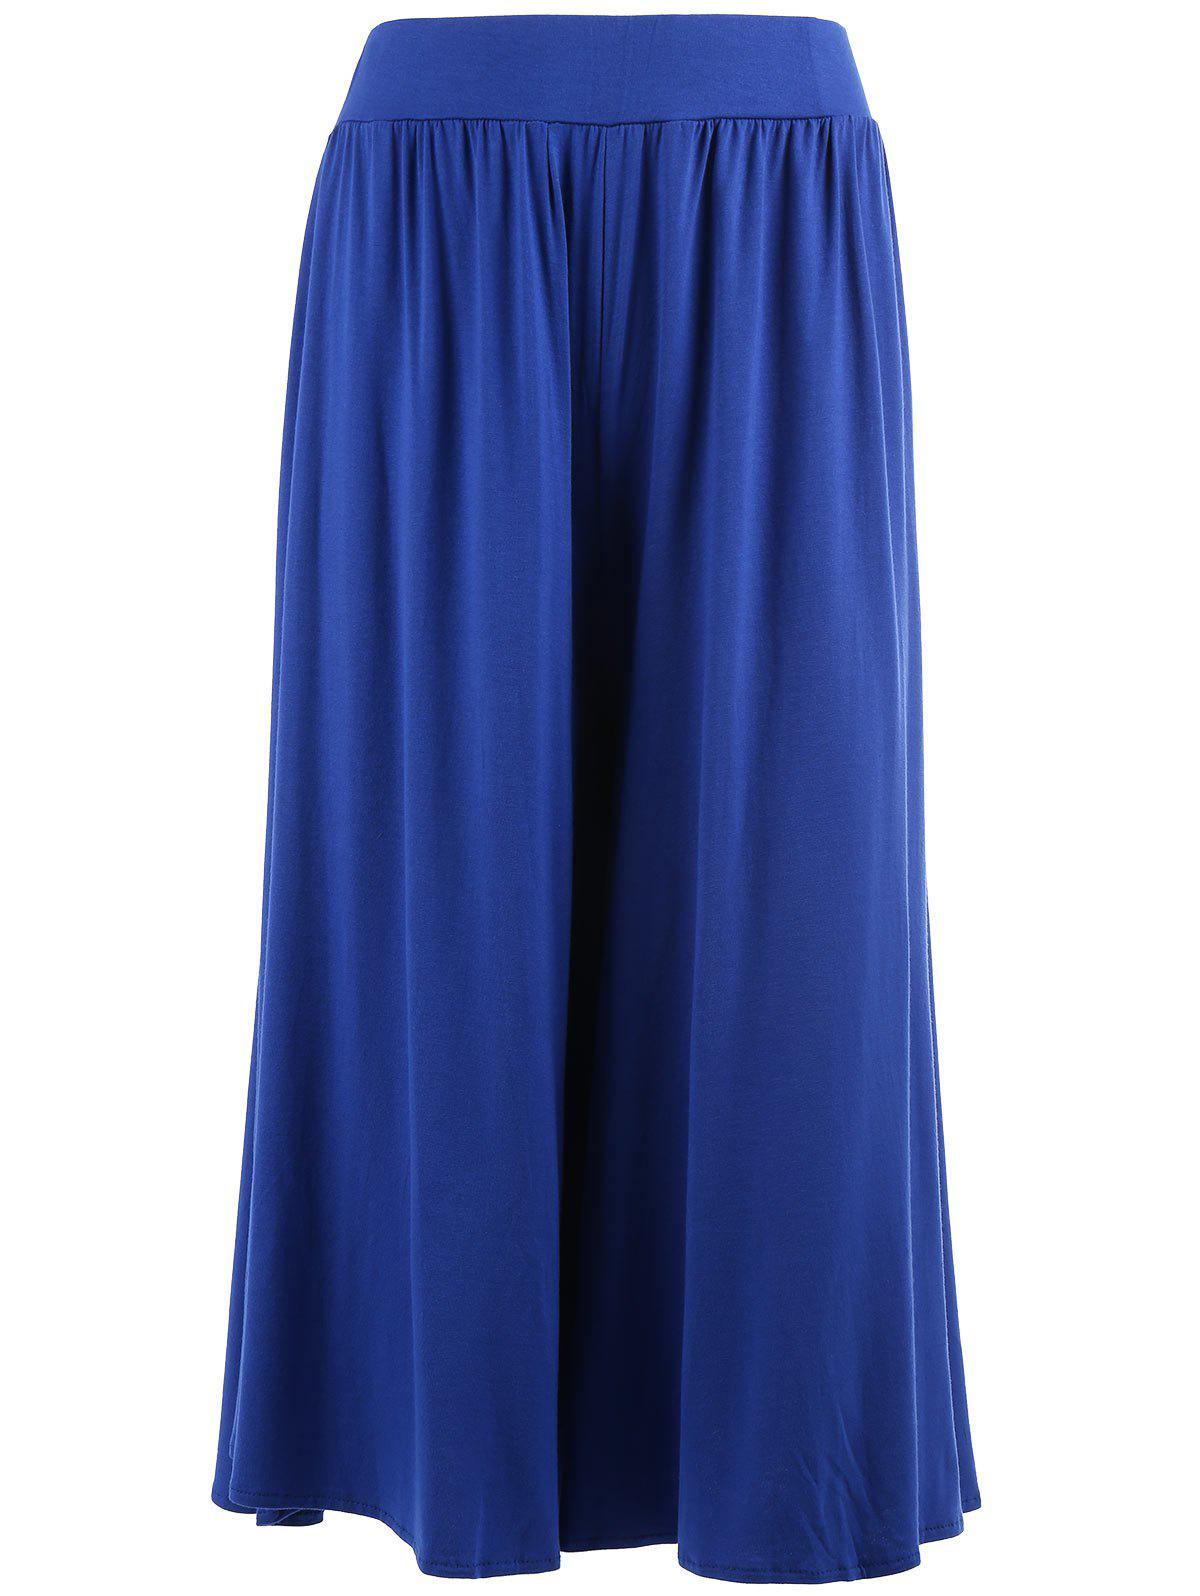 Plus Size Wide Leg Capri Palazzo PantsWOMEN<br><br>Size: 5XL; Color: BLUE; Style: Fashion; Length: Capri; Material: Cotton,Polyester; Fit Type: Loose; Waist Type: High; Closure Type: Elastic Waist; Front Style: Flat; Pattern Type: Solid; Pant Style: Wide Leg Pants; Elasticity: Elastic; Weight: 0.3500kg; Package Contents: 1 x Pants;